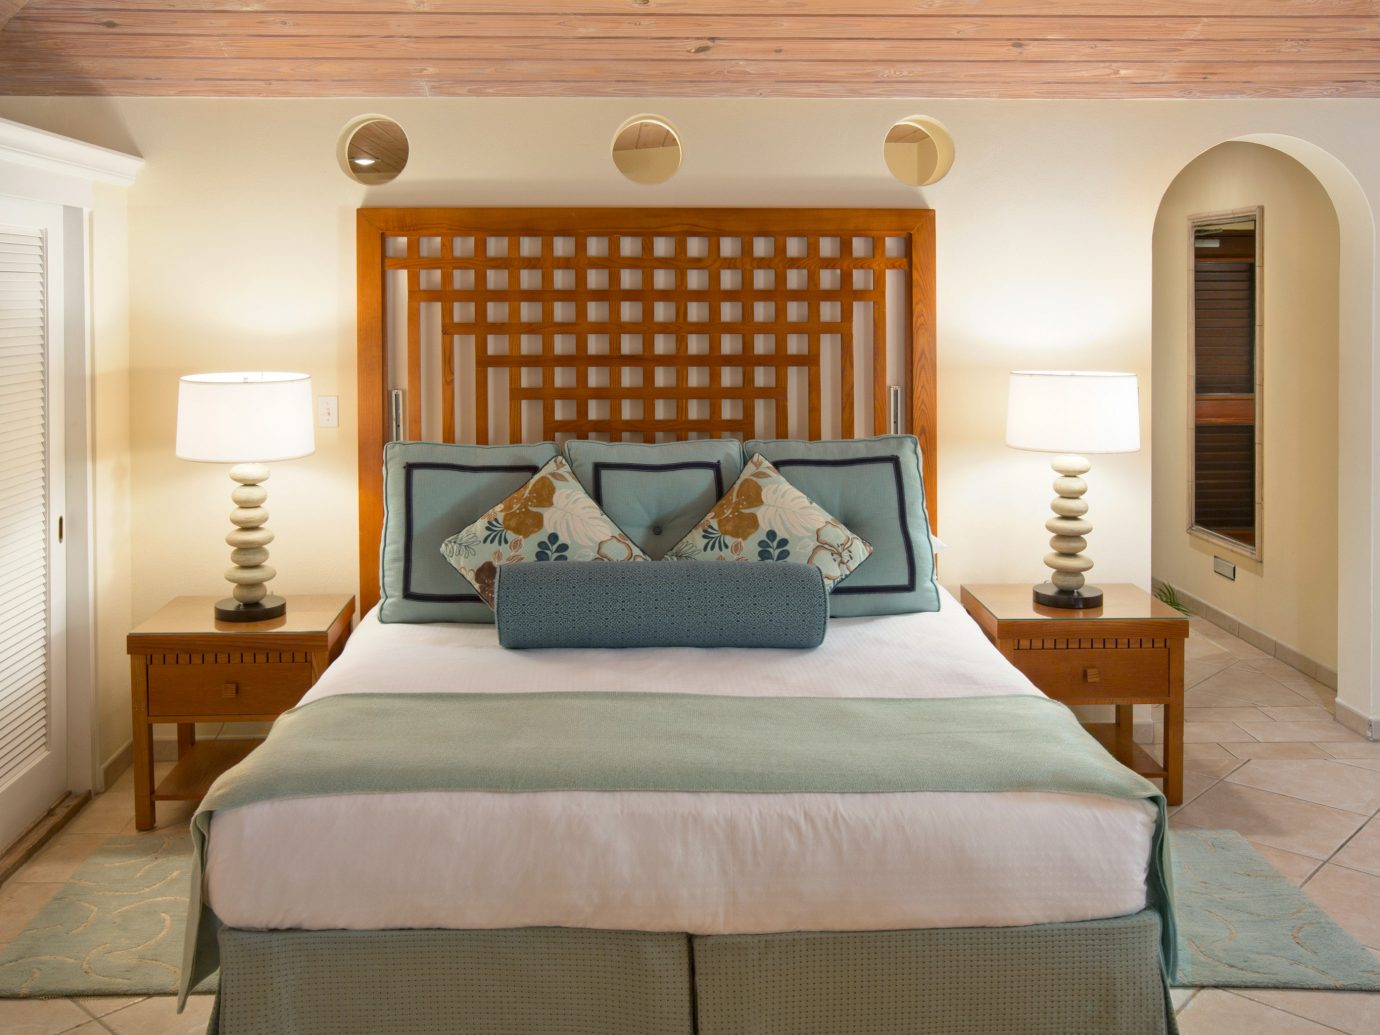 All-Inclusive Resorts Beachfront Bedroom caribbean Family Travel Honeymoon Hotels Island Resort Romance Romantic Suite Tropical wall floor bed indoor room property estate cottage interior design real estate home furniture